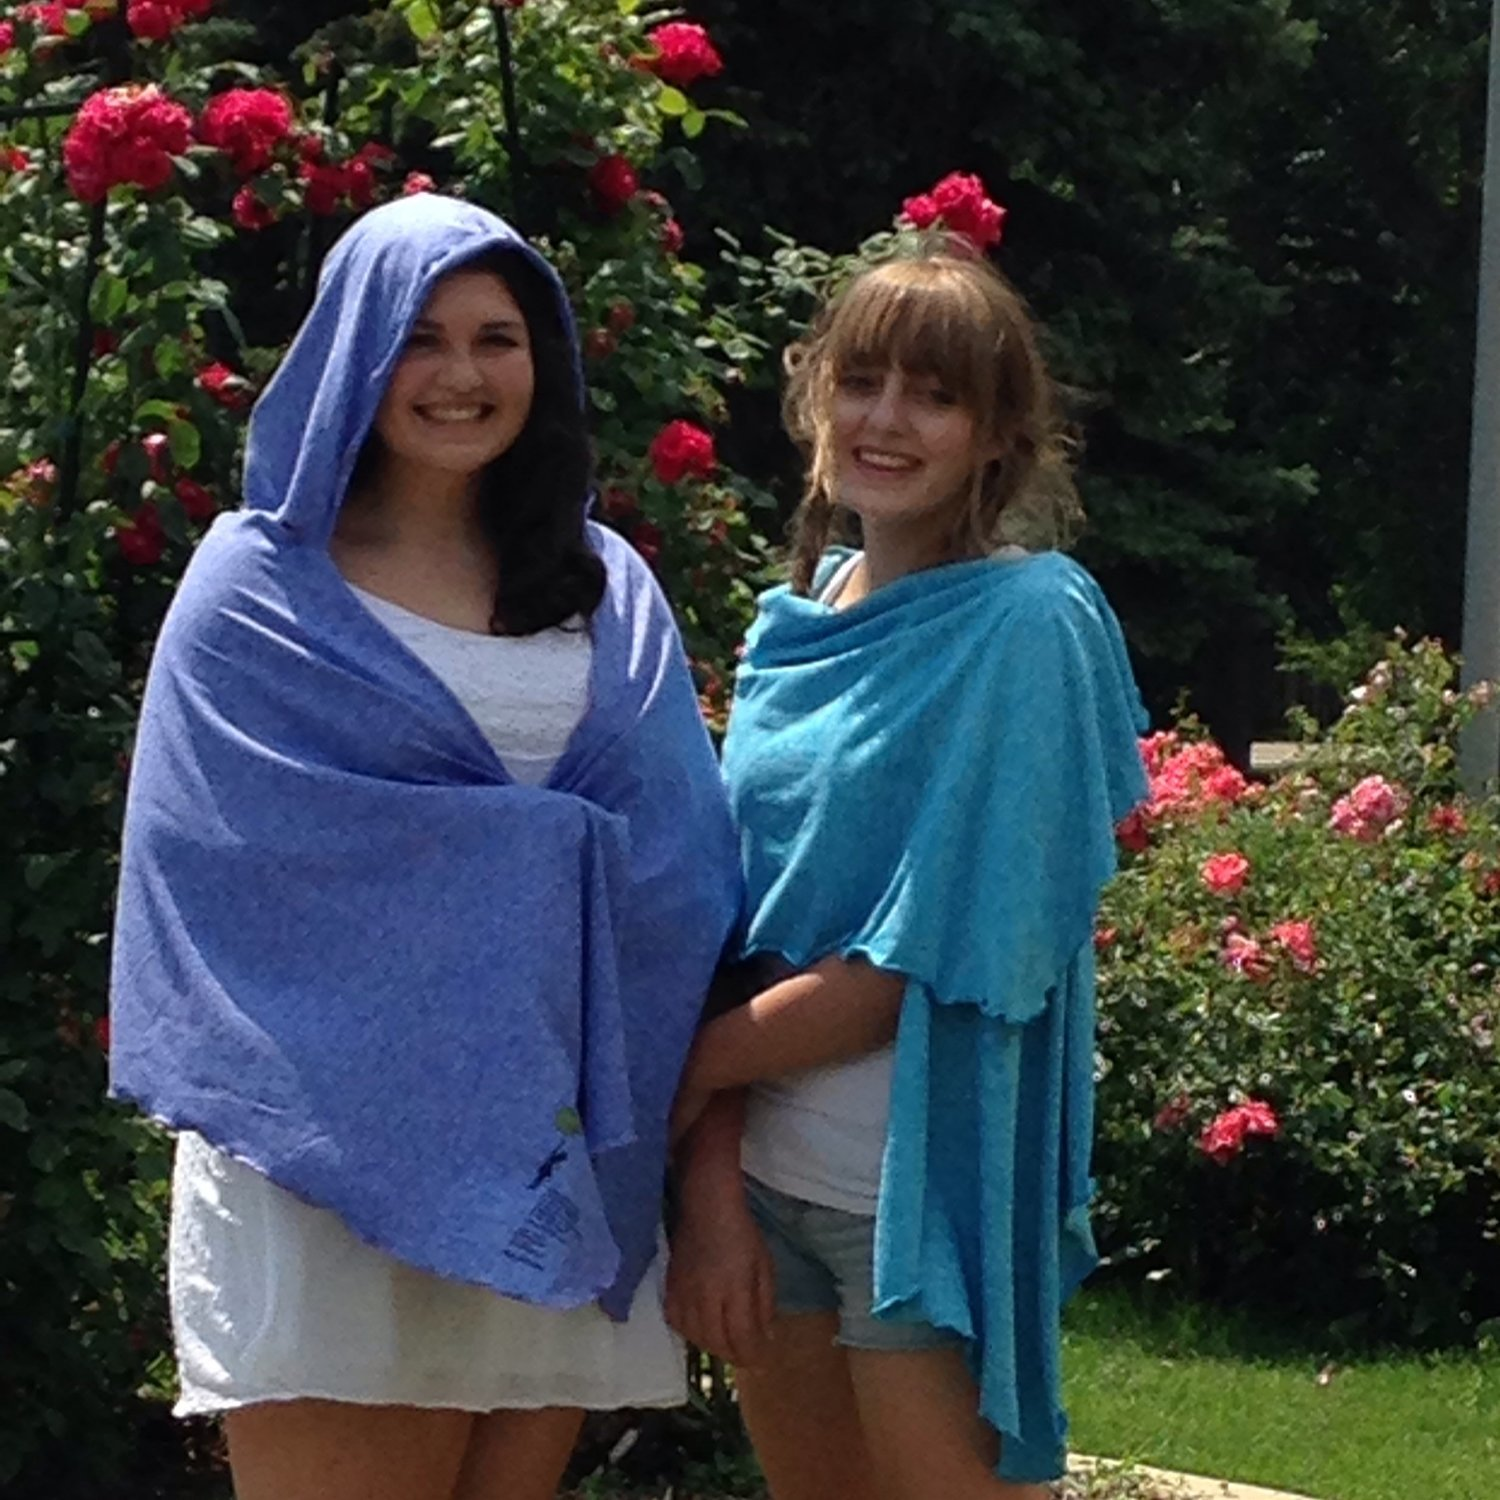 SPF 50 Short Hooded Shawl Turquoise (on the right)